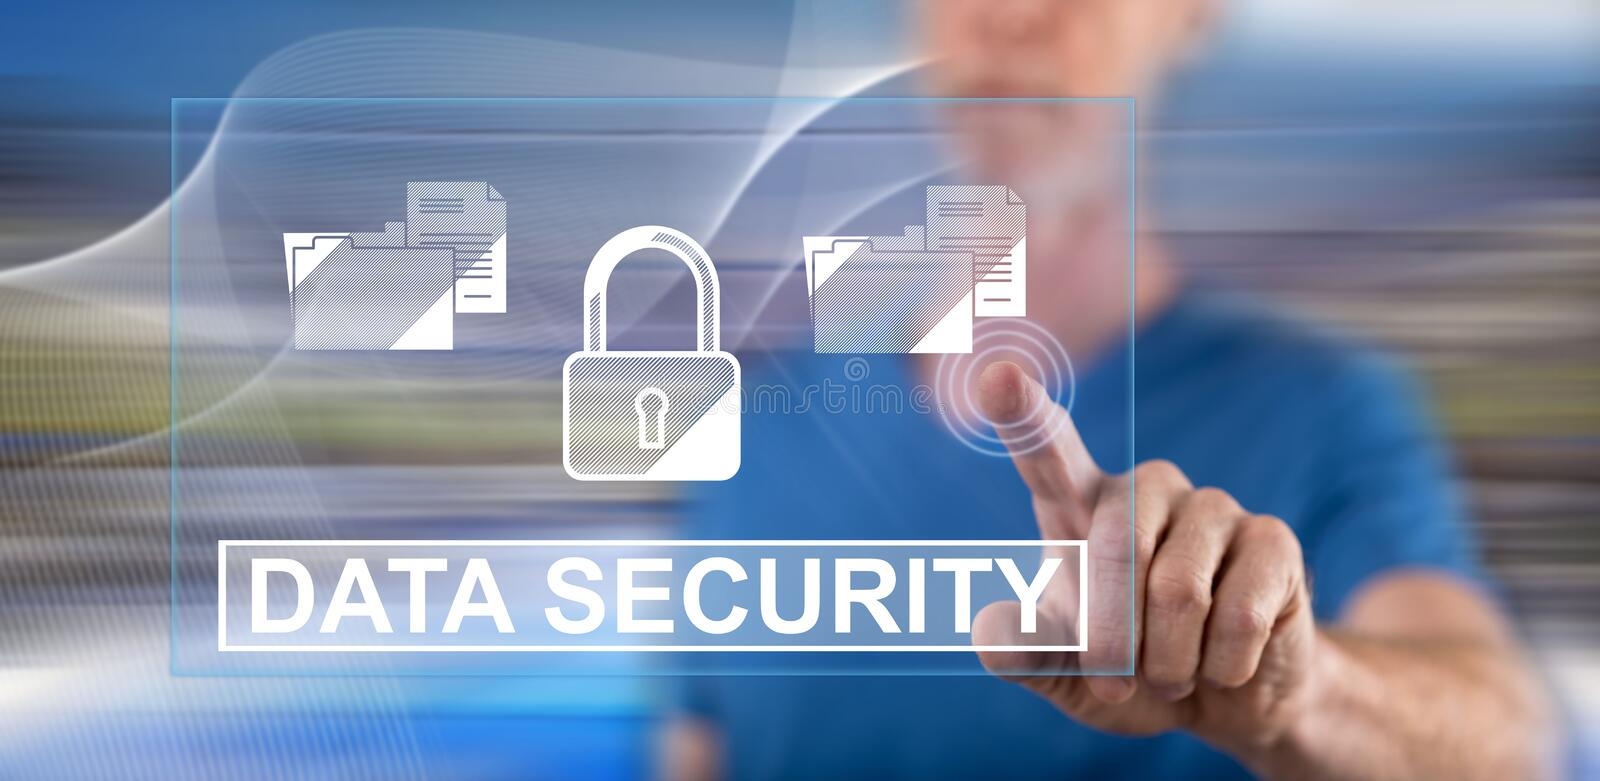 Man touching a data security concept royalty free stock photo